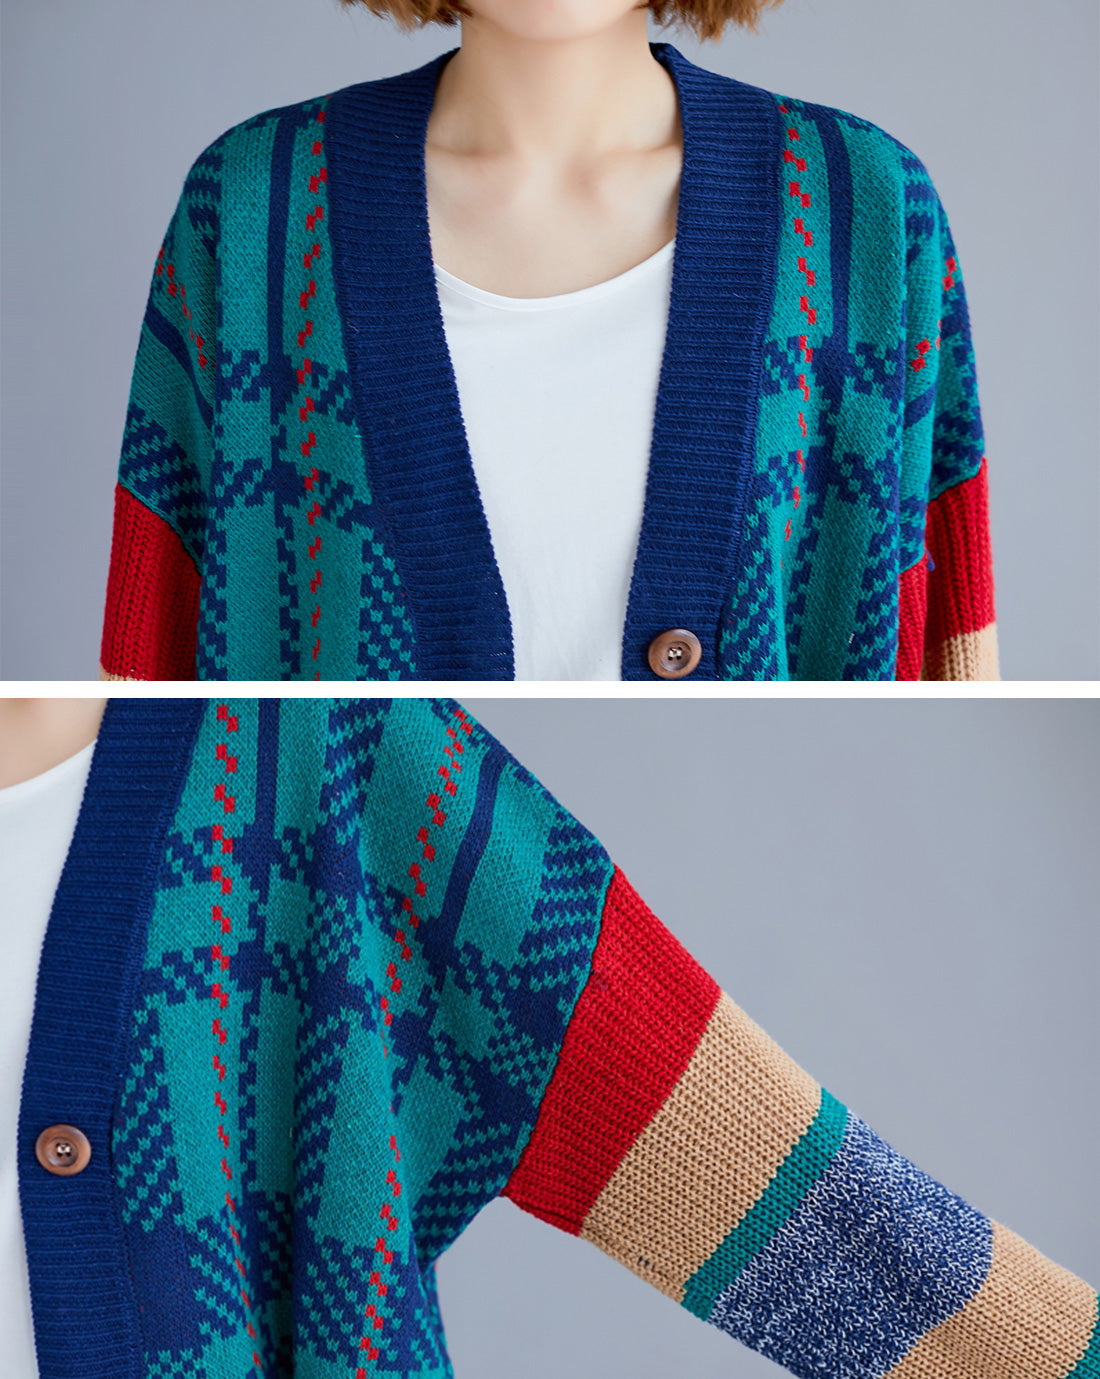 Make Mine Cozy Fair Isle Cardigan Sweater Details 1